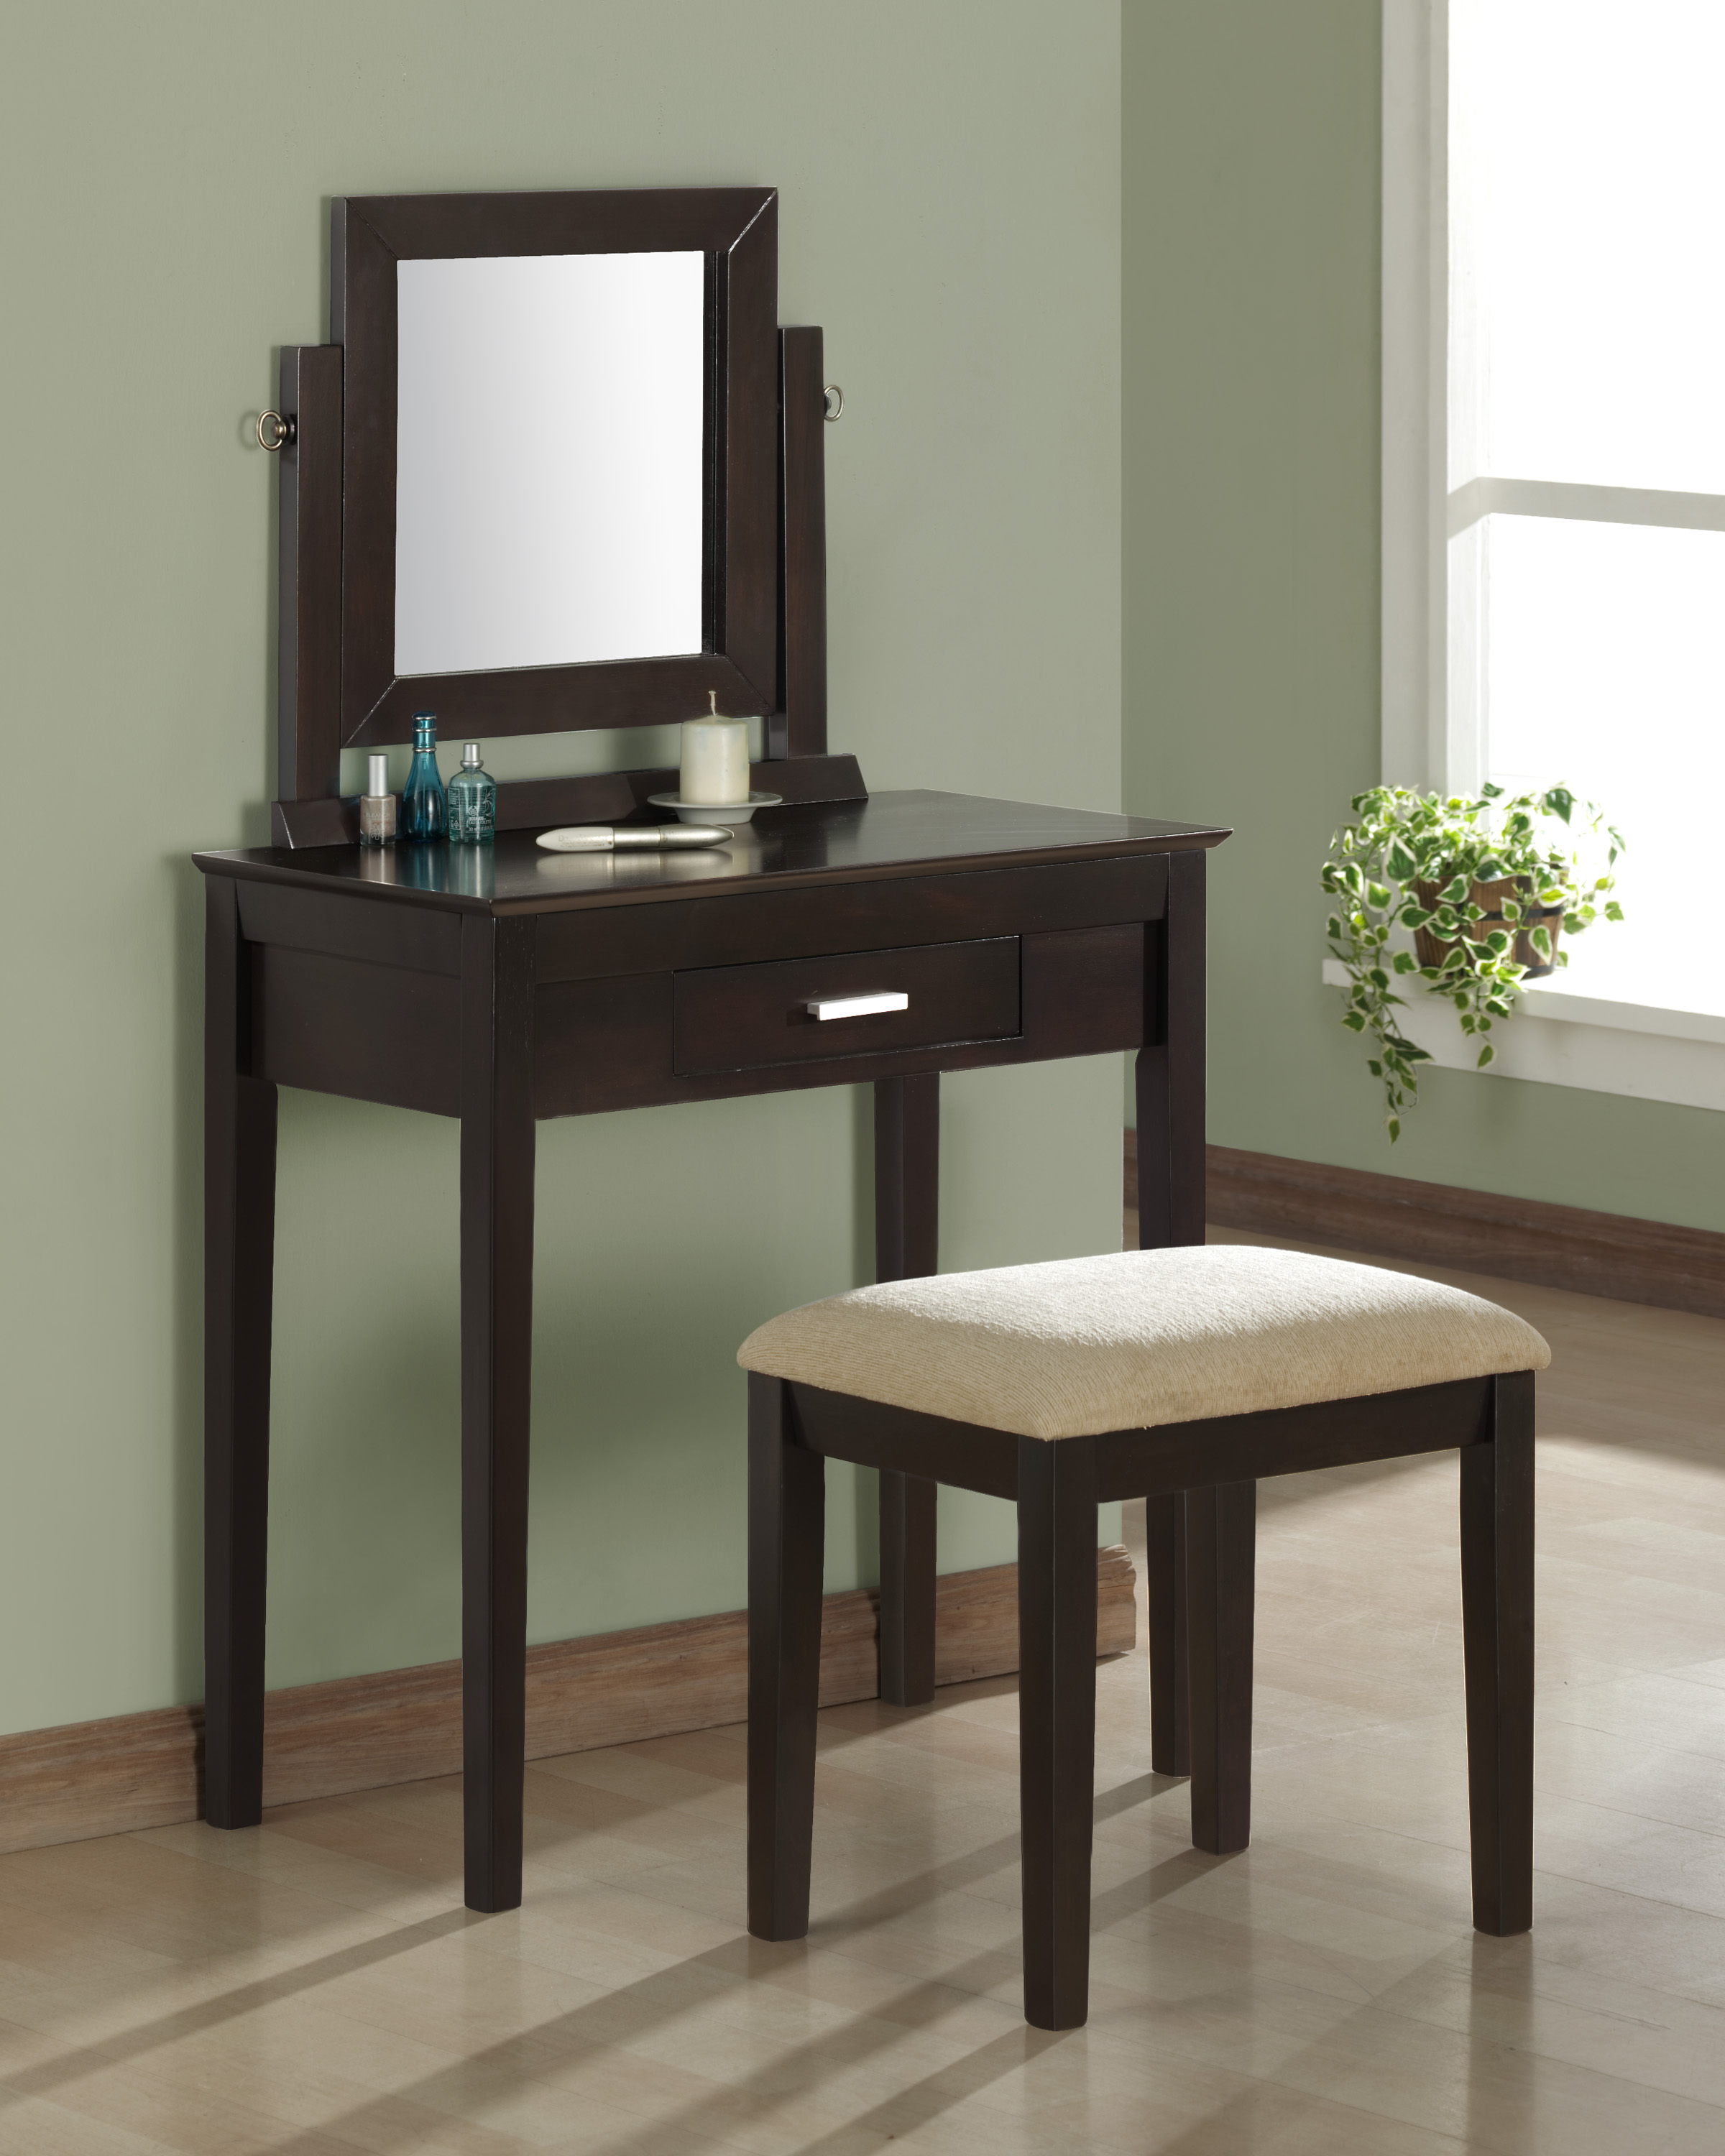 Furniture > Bedroom Furniture > Vanity > Bedroom Square Vanity